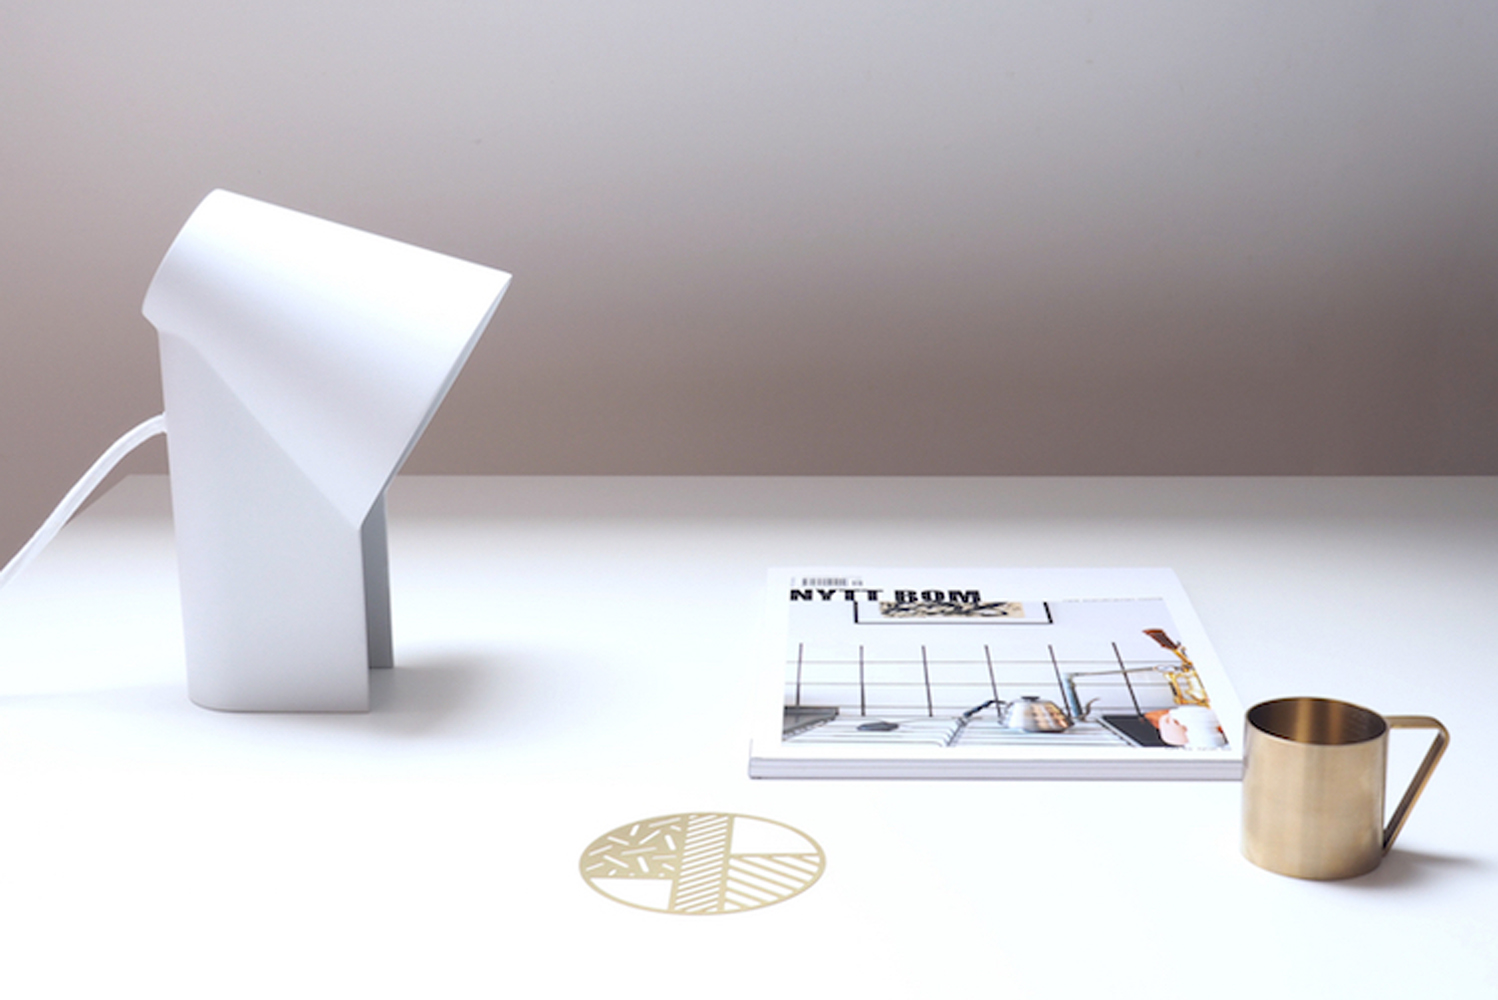 Although small in stature, Study provides just the right amount of light for a den, office or bedroom.